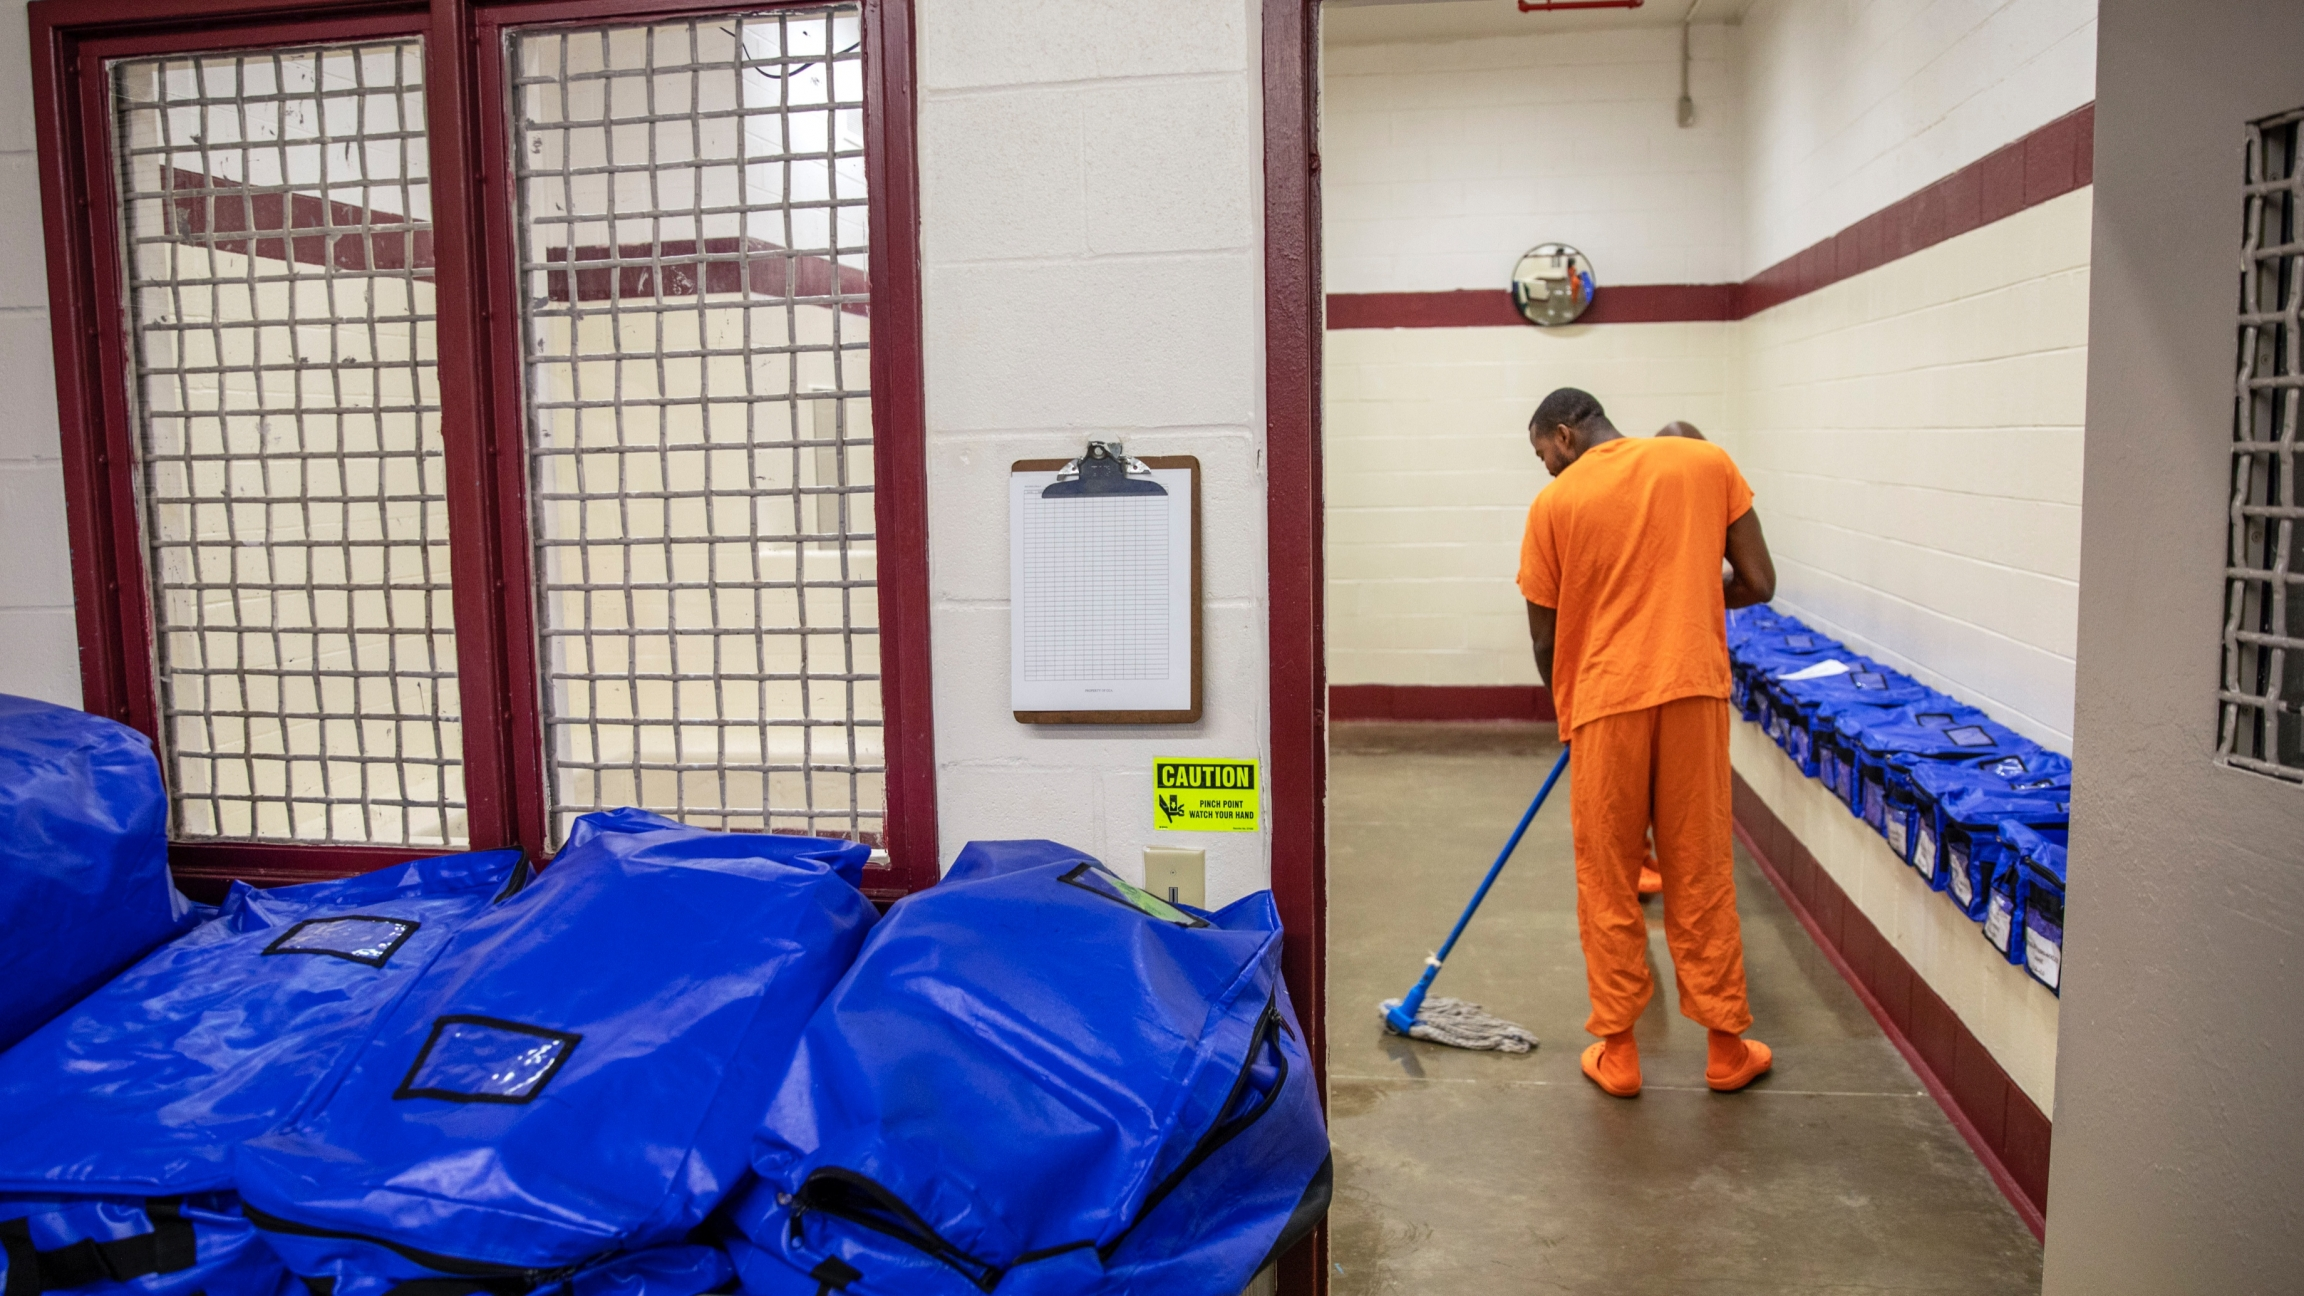 An inmate wearing an orange suit mops near blue plastic bags inside a detention center.